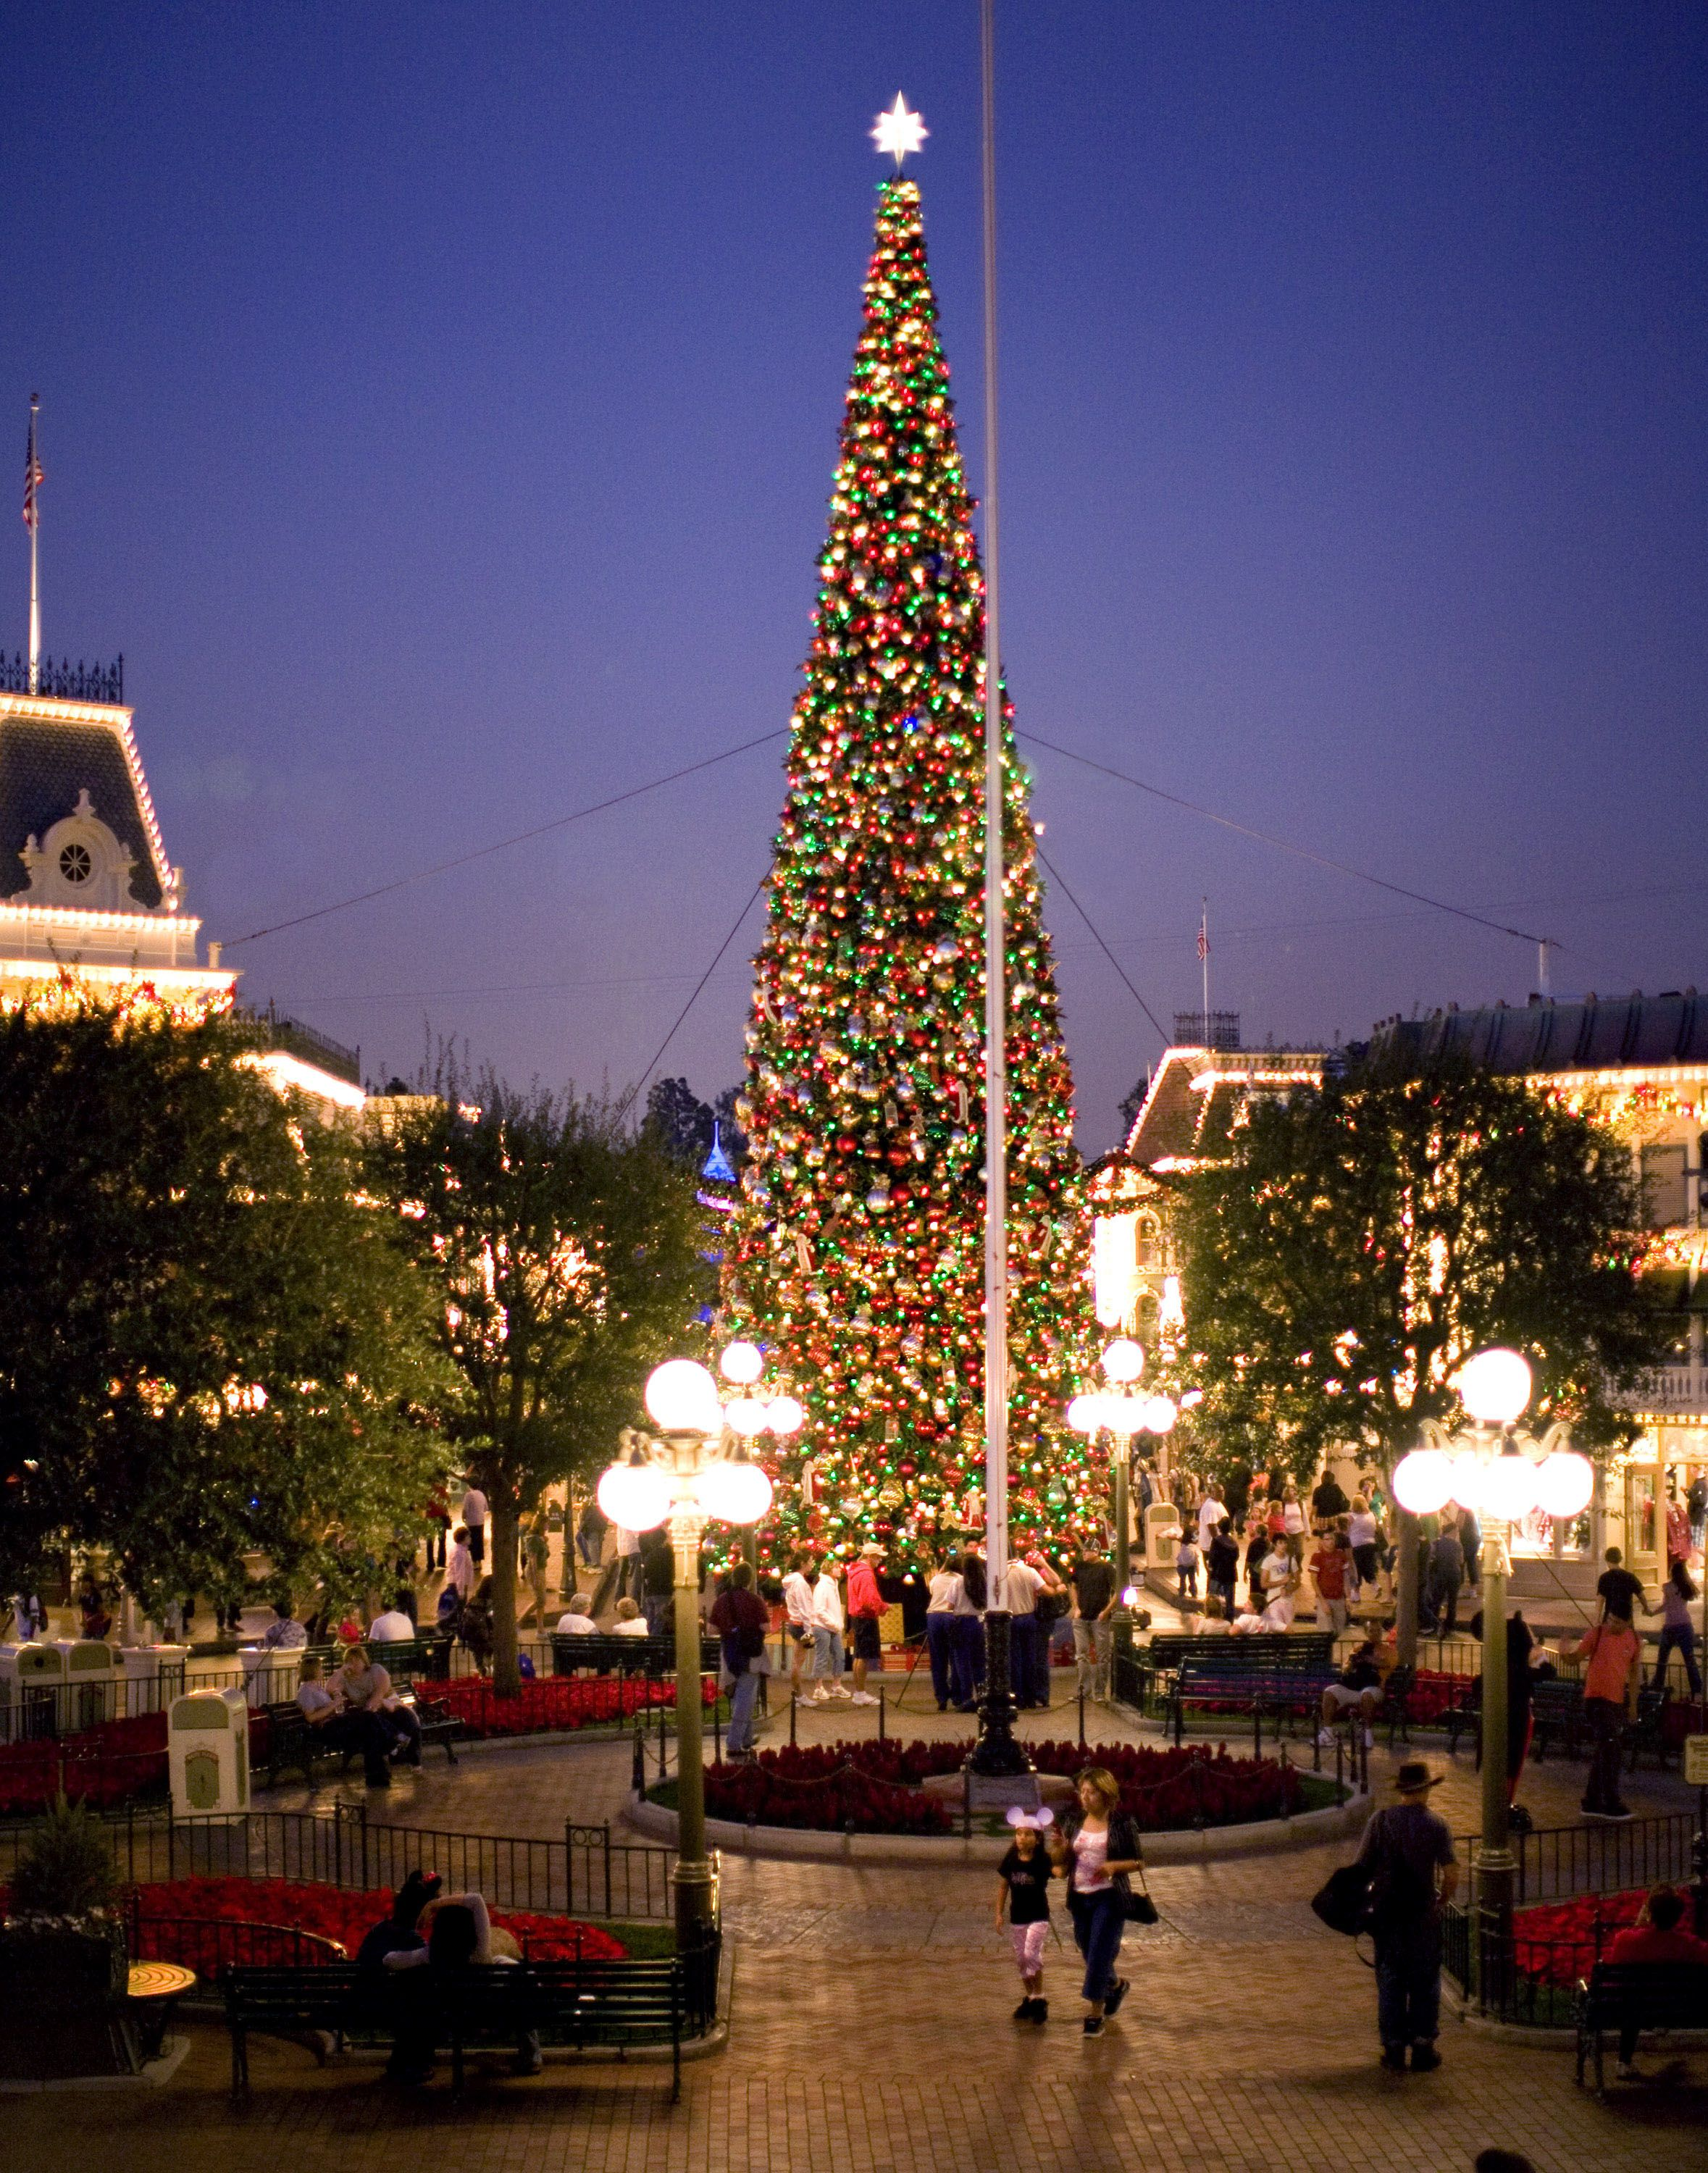 christmas decorations disneyland holiday decorations dad logic - Disneyland Christmas Decorations